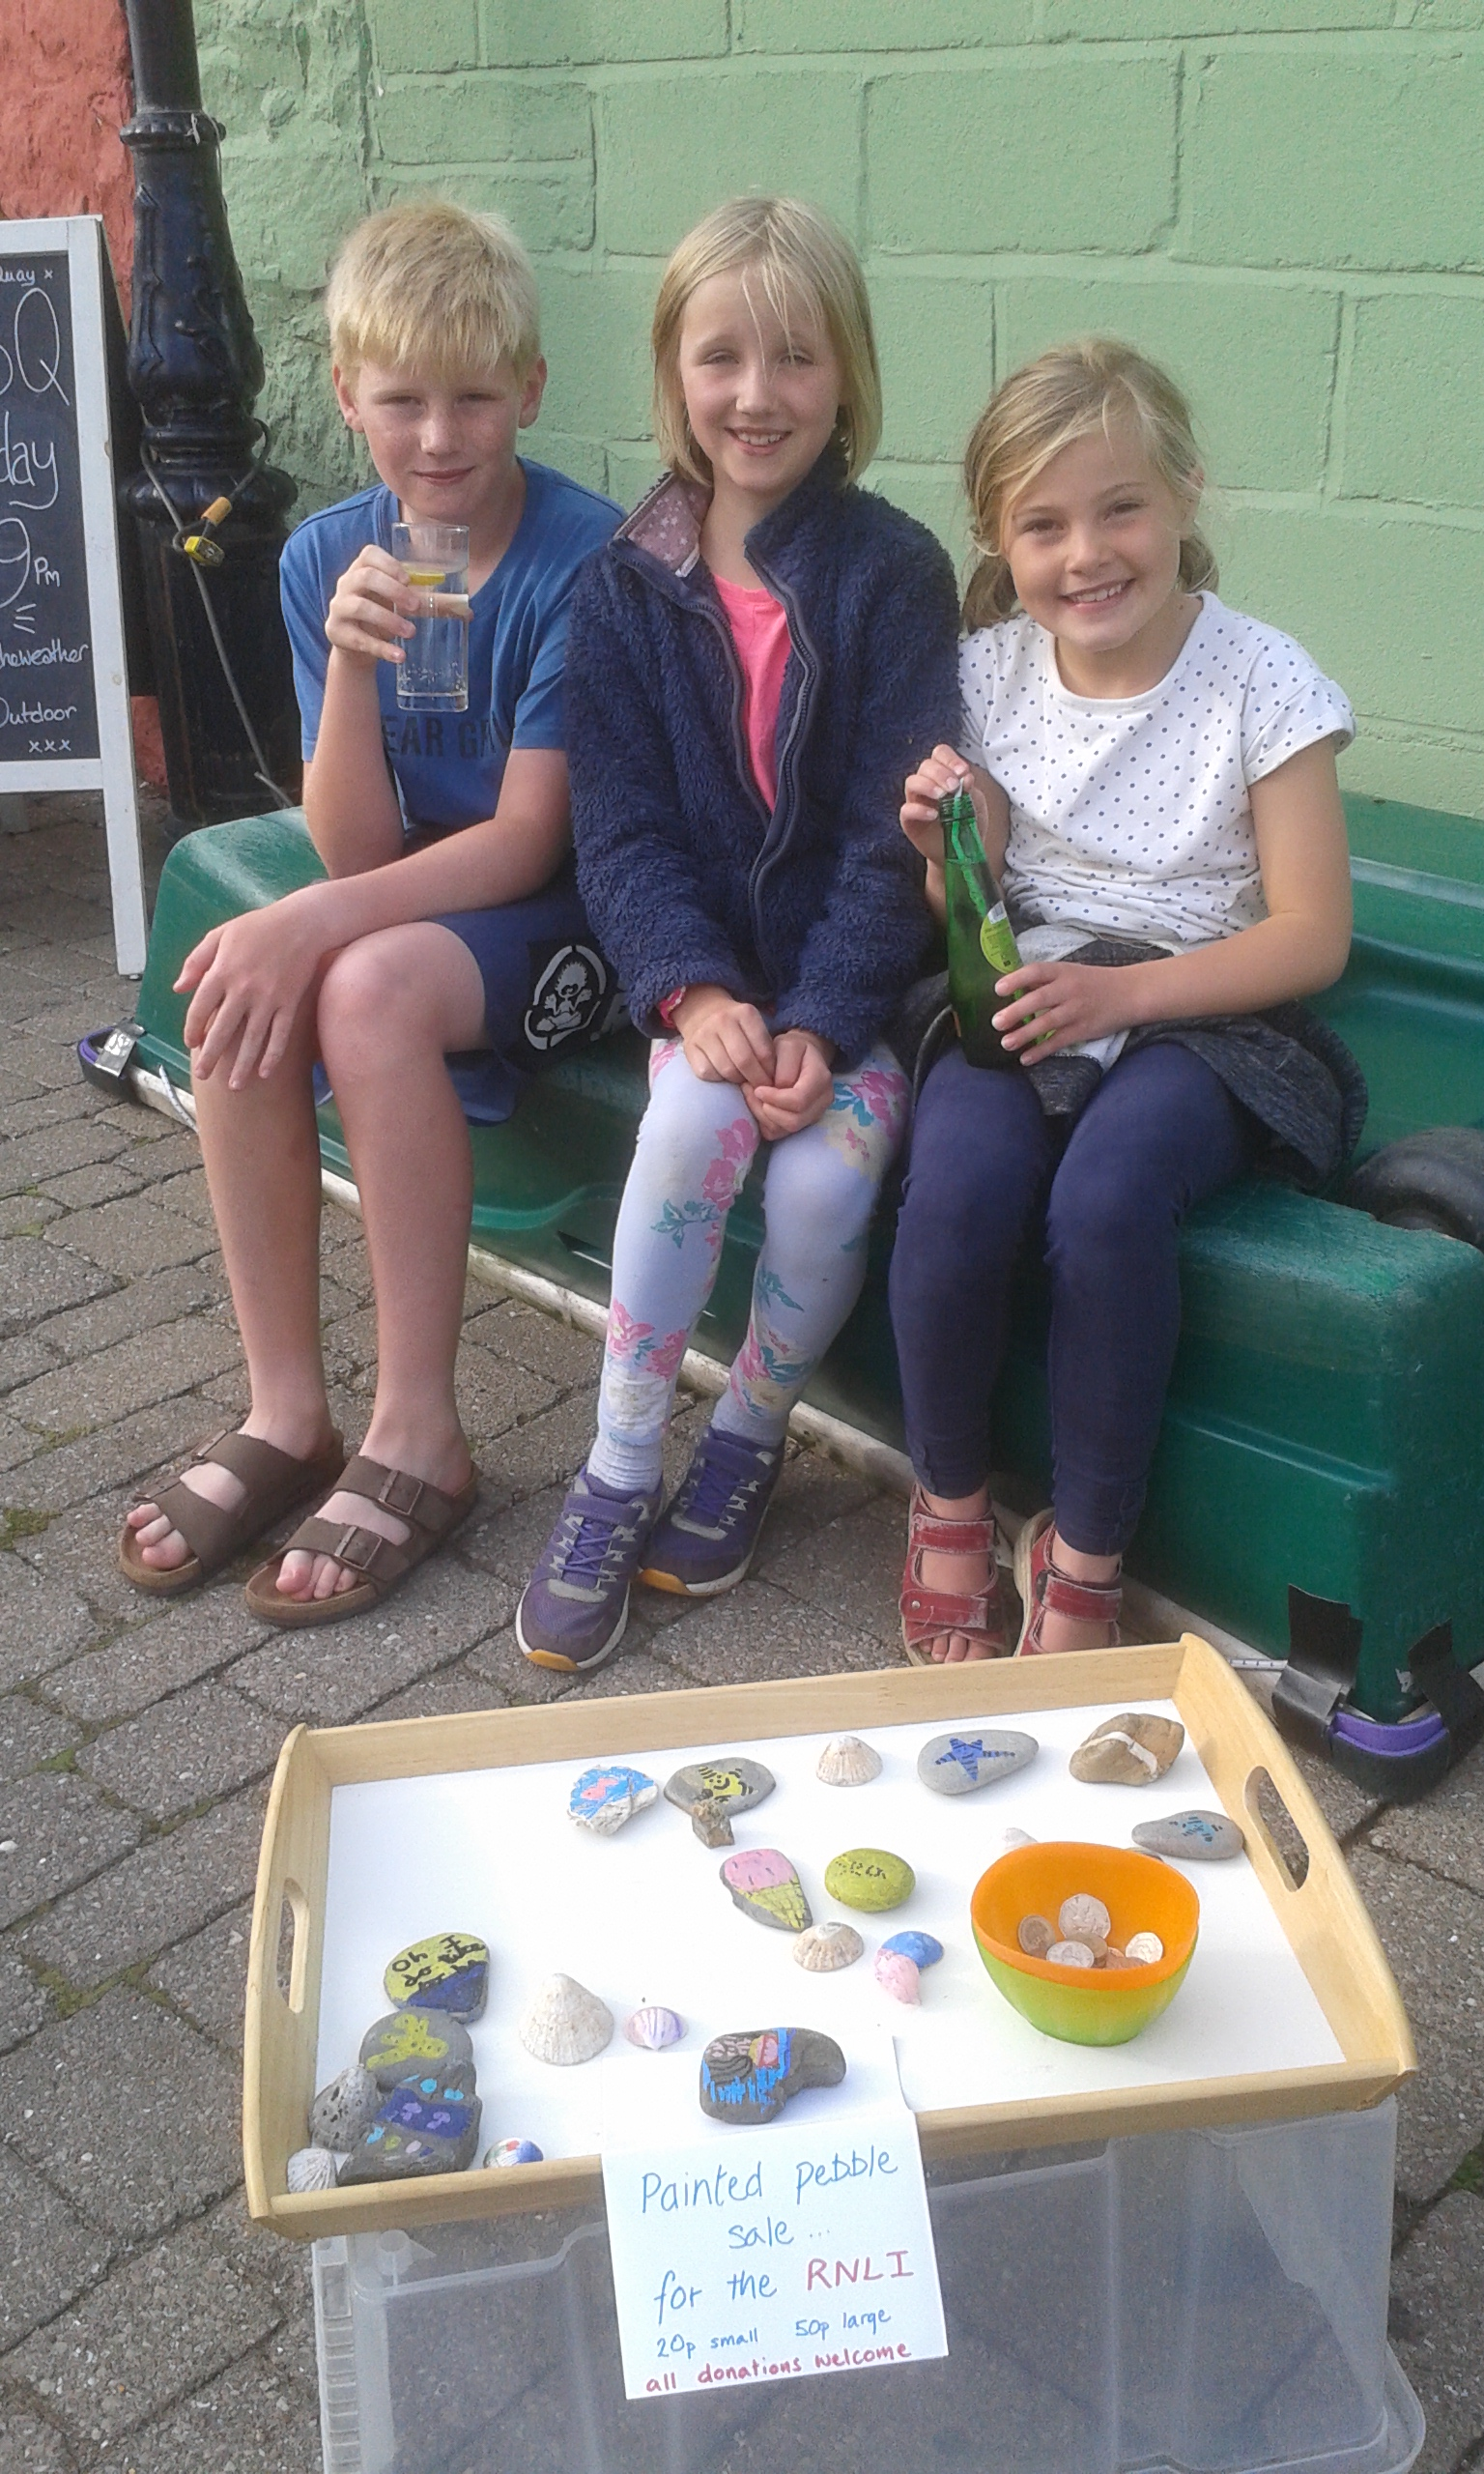 Jemima Leatt and Esther Toward, who live in Wells and Southampton, collected pebbles, hand painted them and set up a small stall on the quay to sell them to passers-by on the quay and raised nearly £30.00